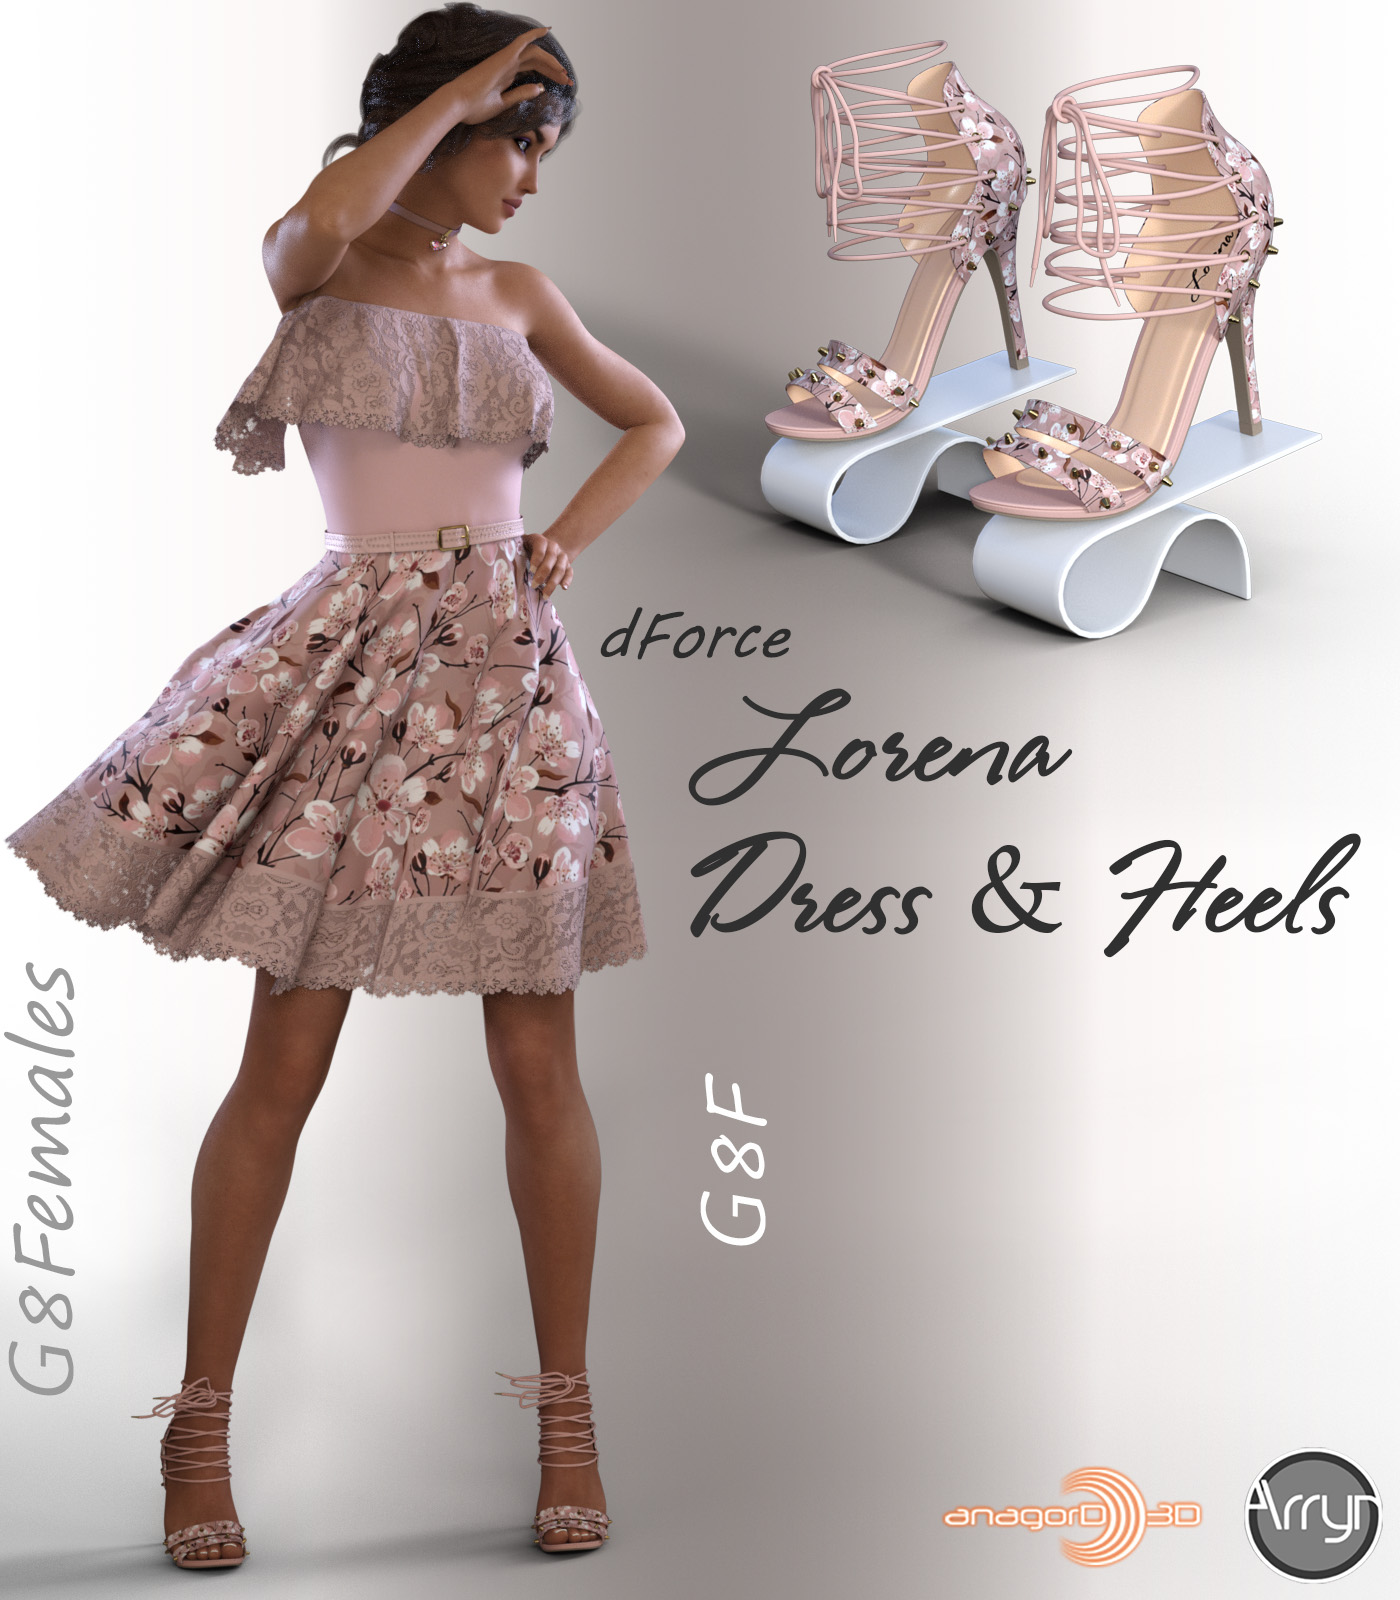 dForce Lorena Dress and Footwear Outfit for G8F by Arryn